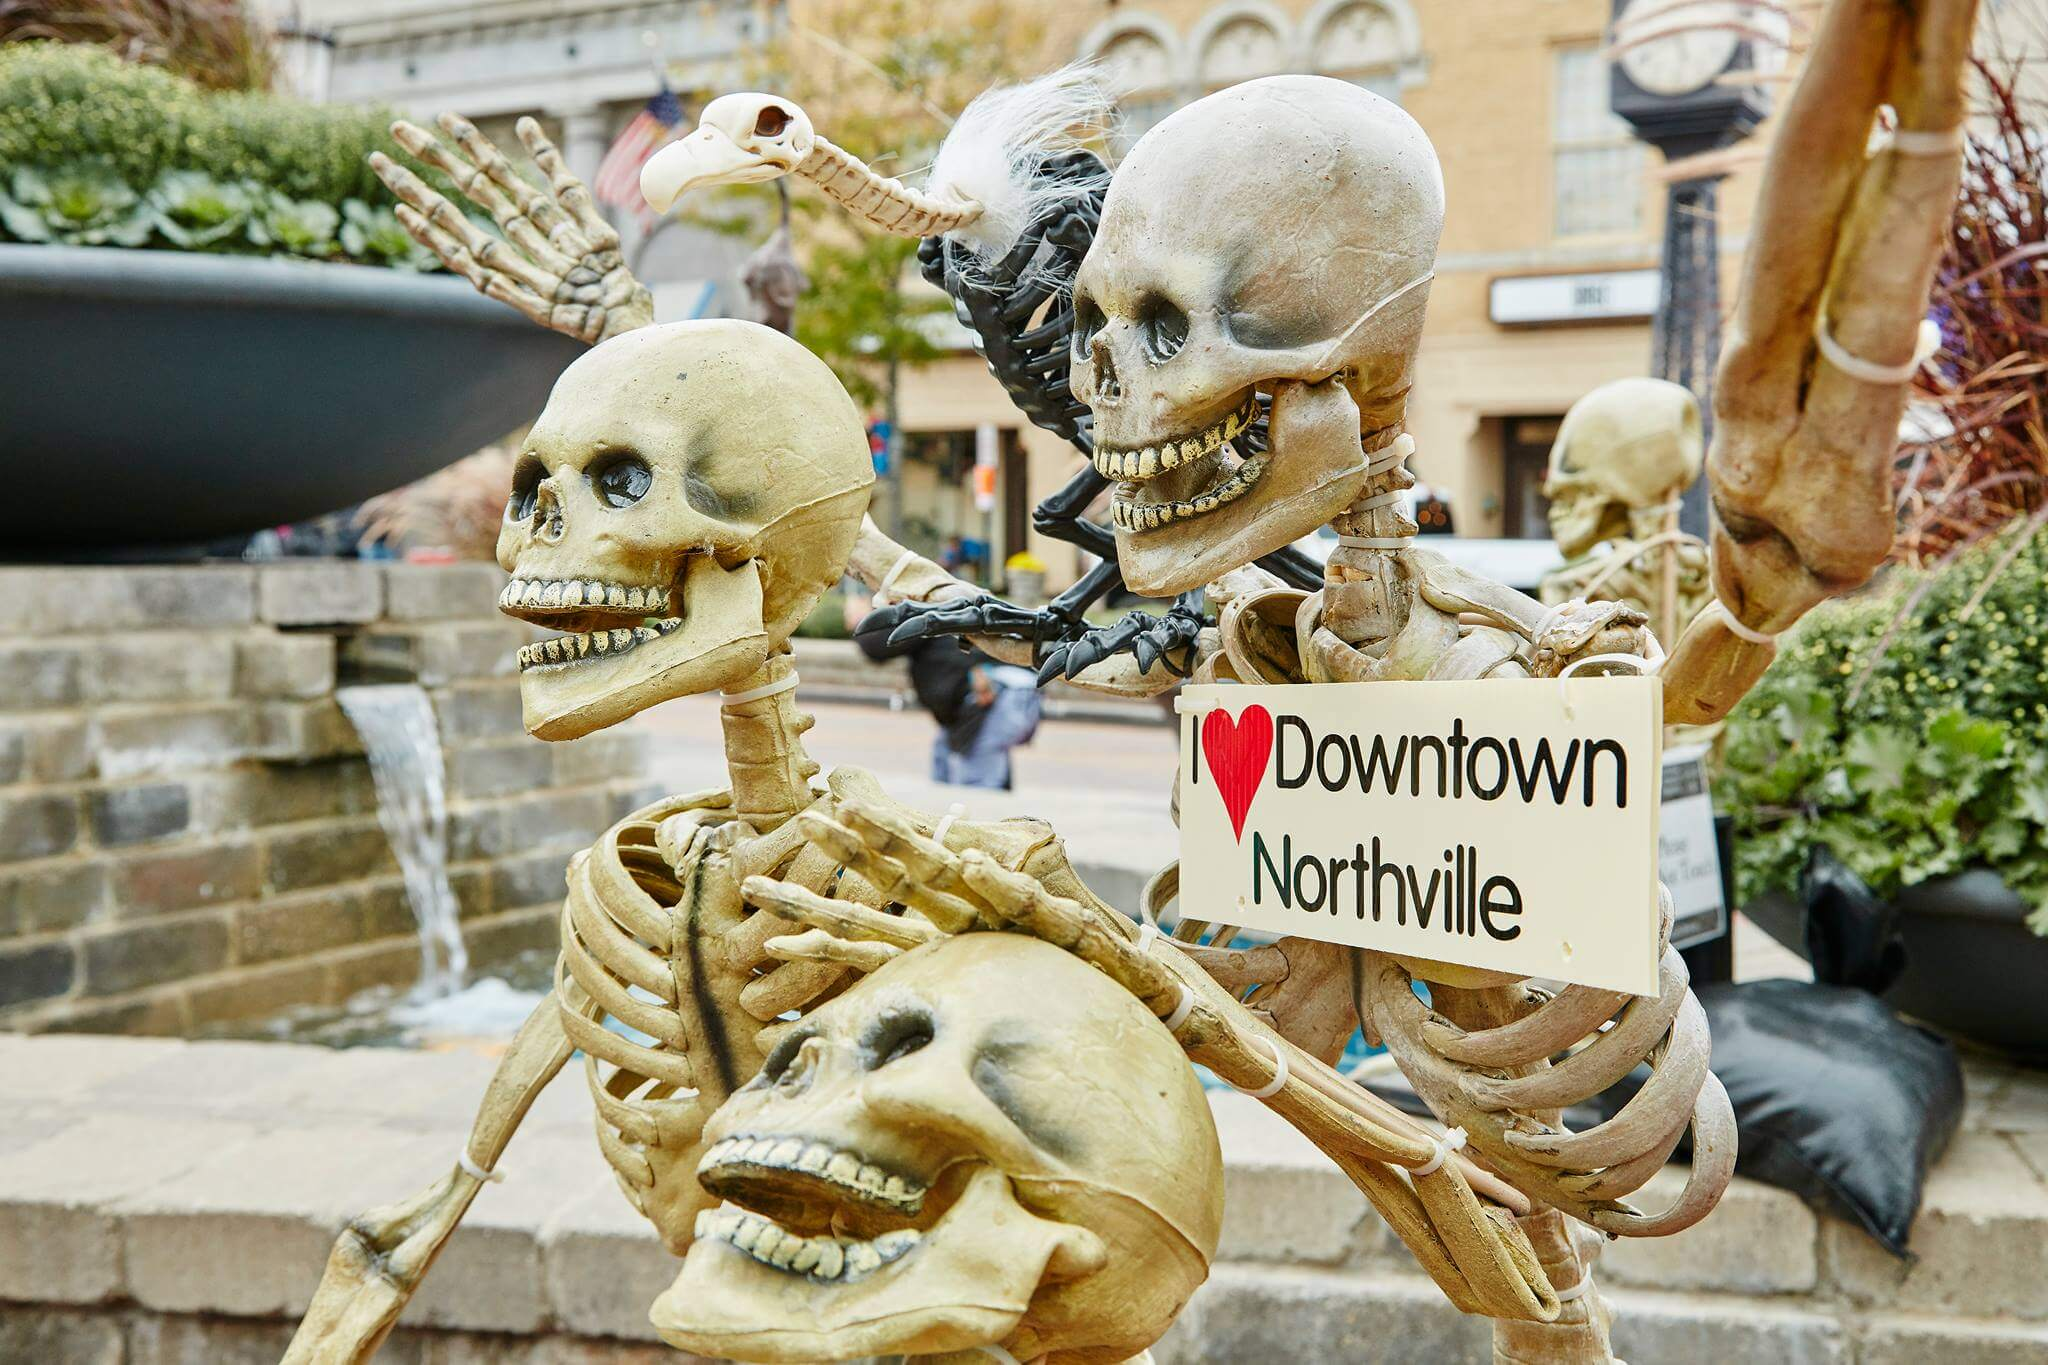 https://www.facebook.com/DowntownNorthville/photos/gm.873687836163214/10155511411407175/?type=3&theater